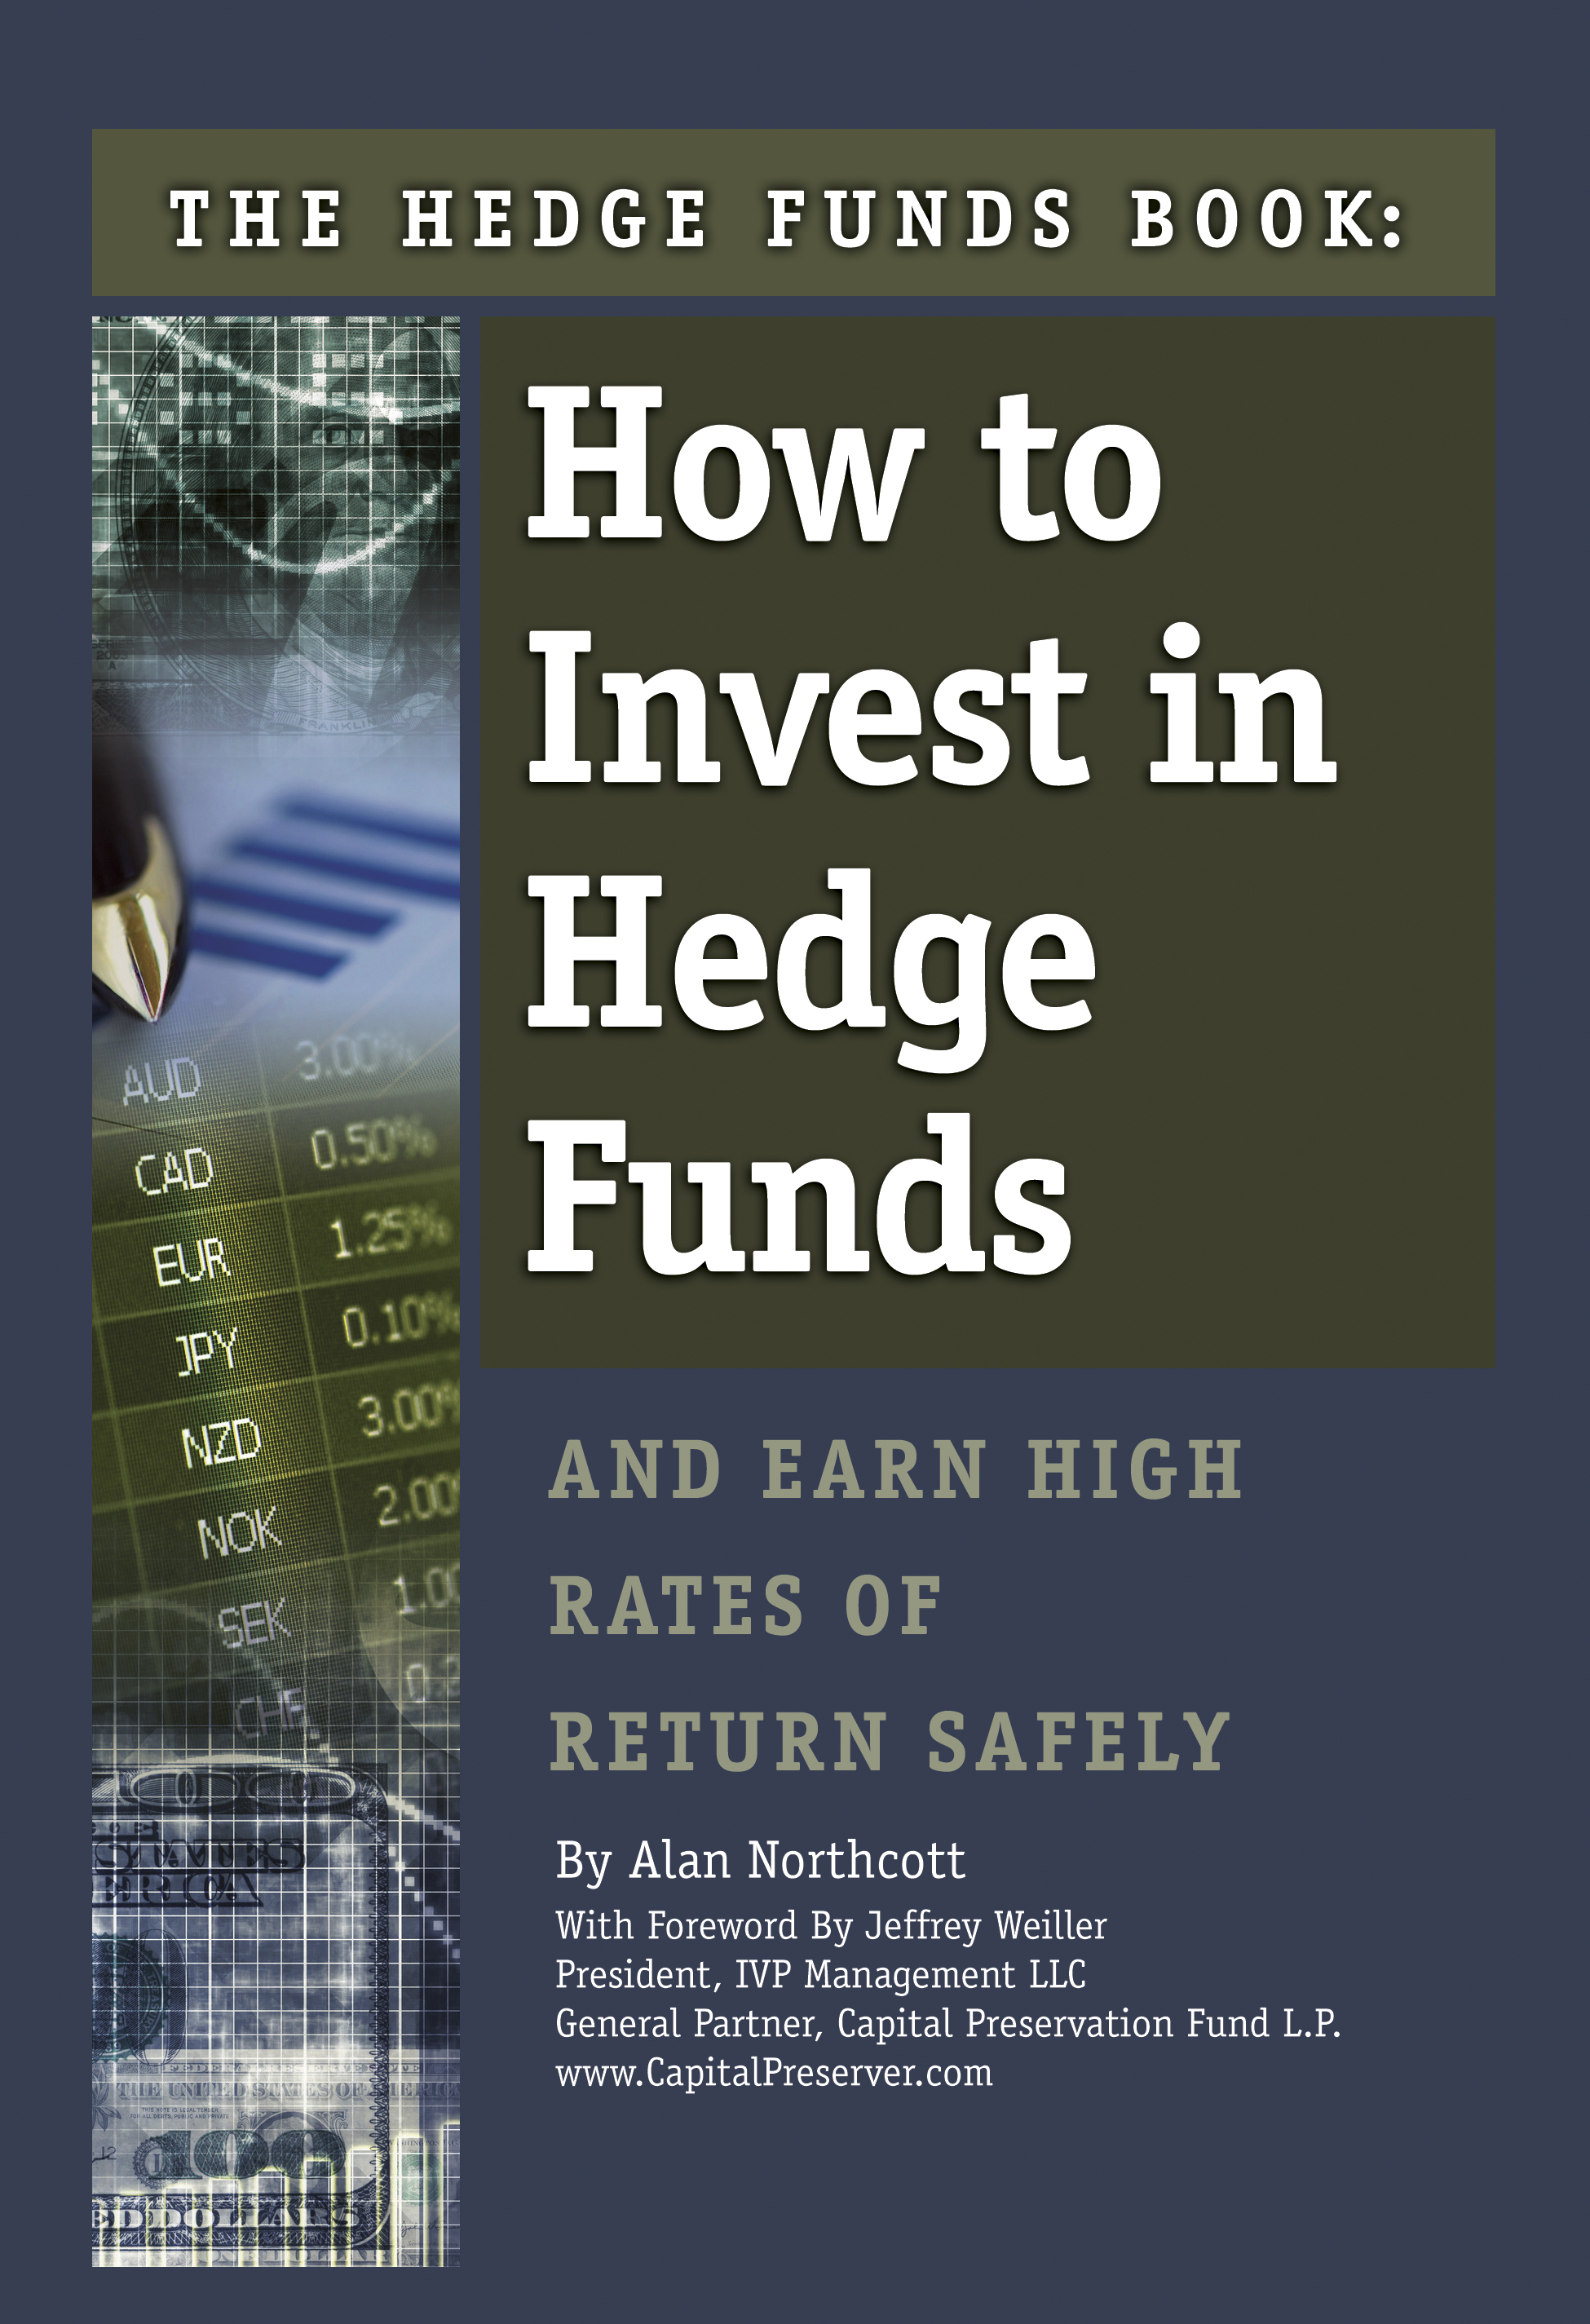 The Hedge Funds Book  How to Invest in Hedge Funds & Earn High Rates of Return Safely